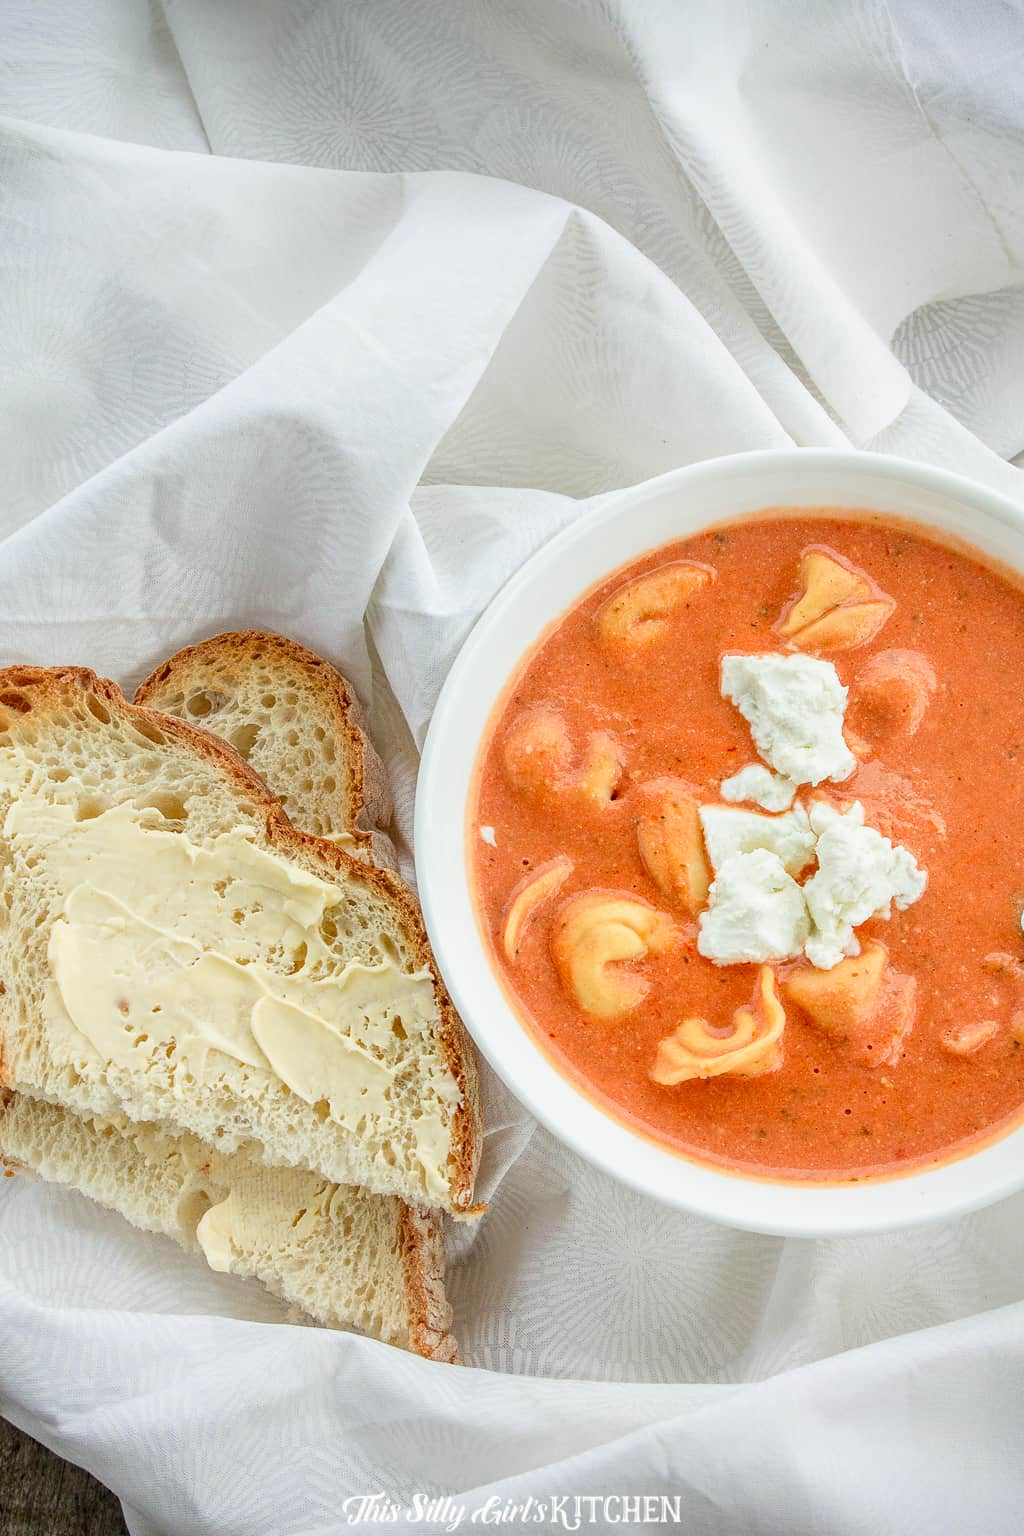 Overhead of soup with cheese and bread